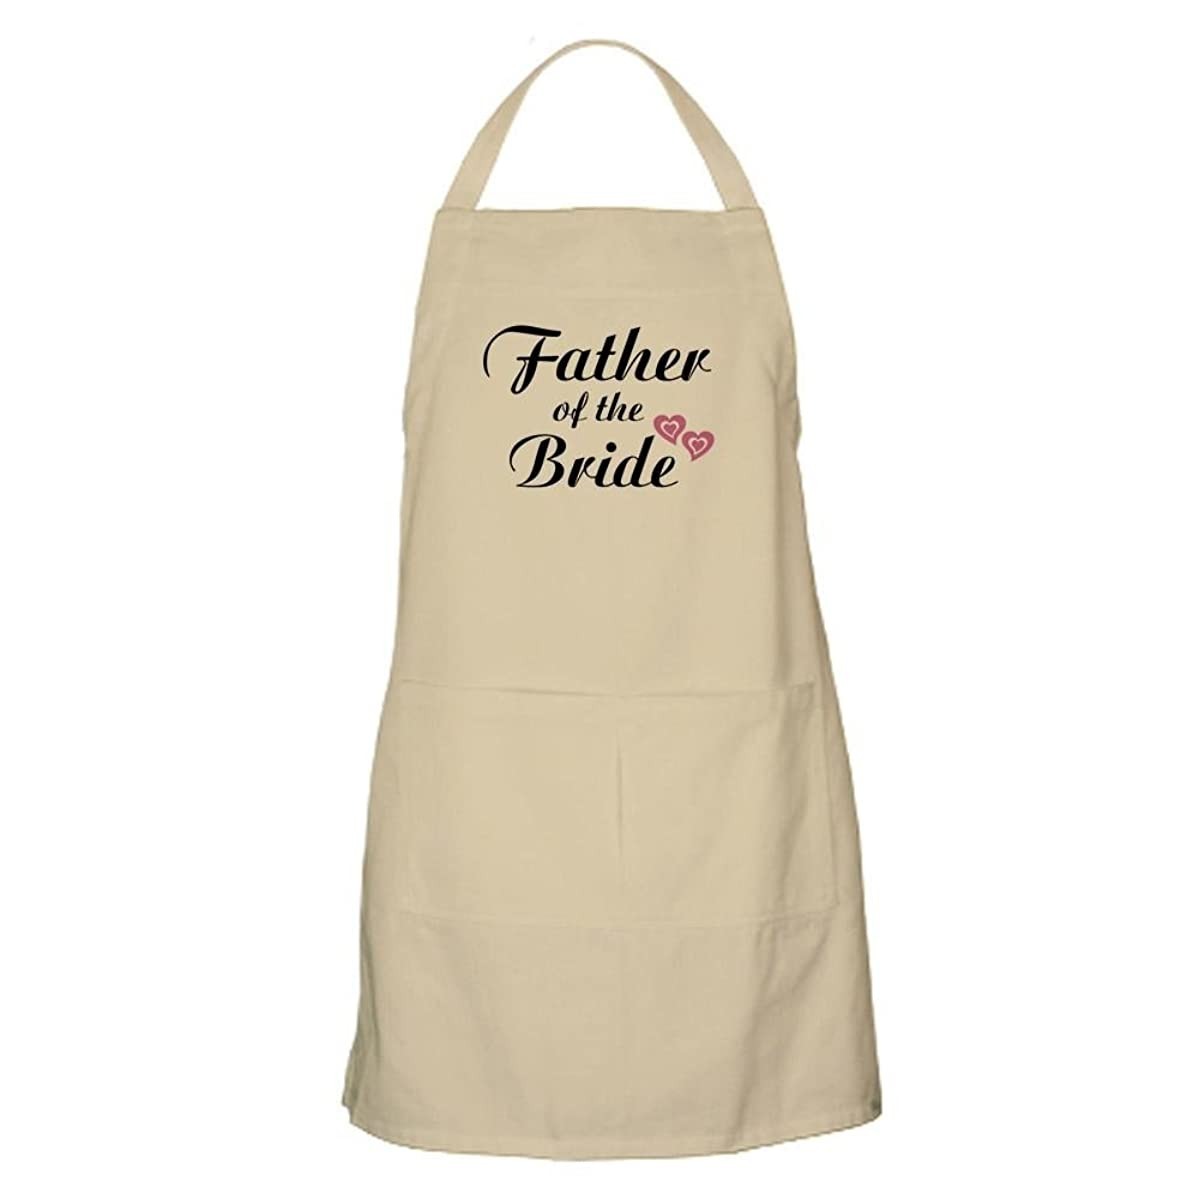 CafePress Father of The Bride BBQ Apron Kitchen Apron with Pockets, Grilling Apron, Baking Apron